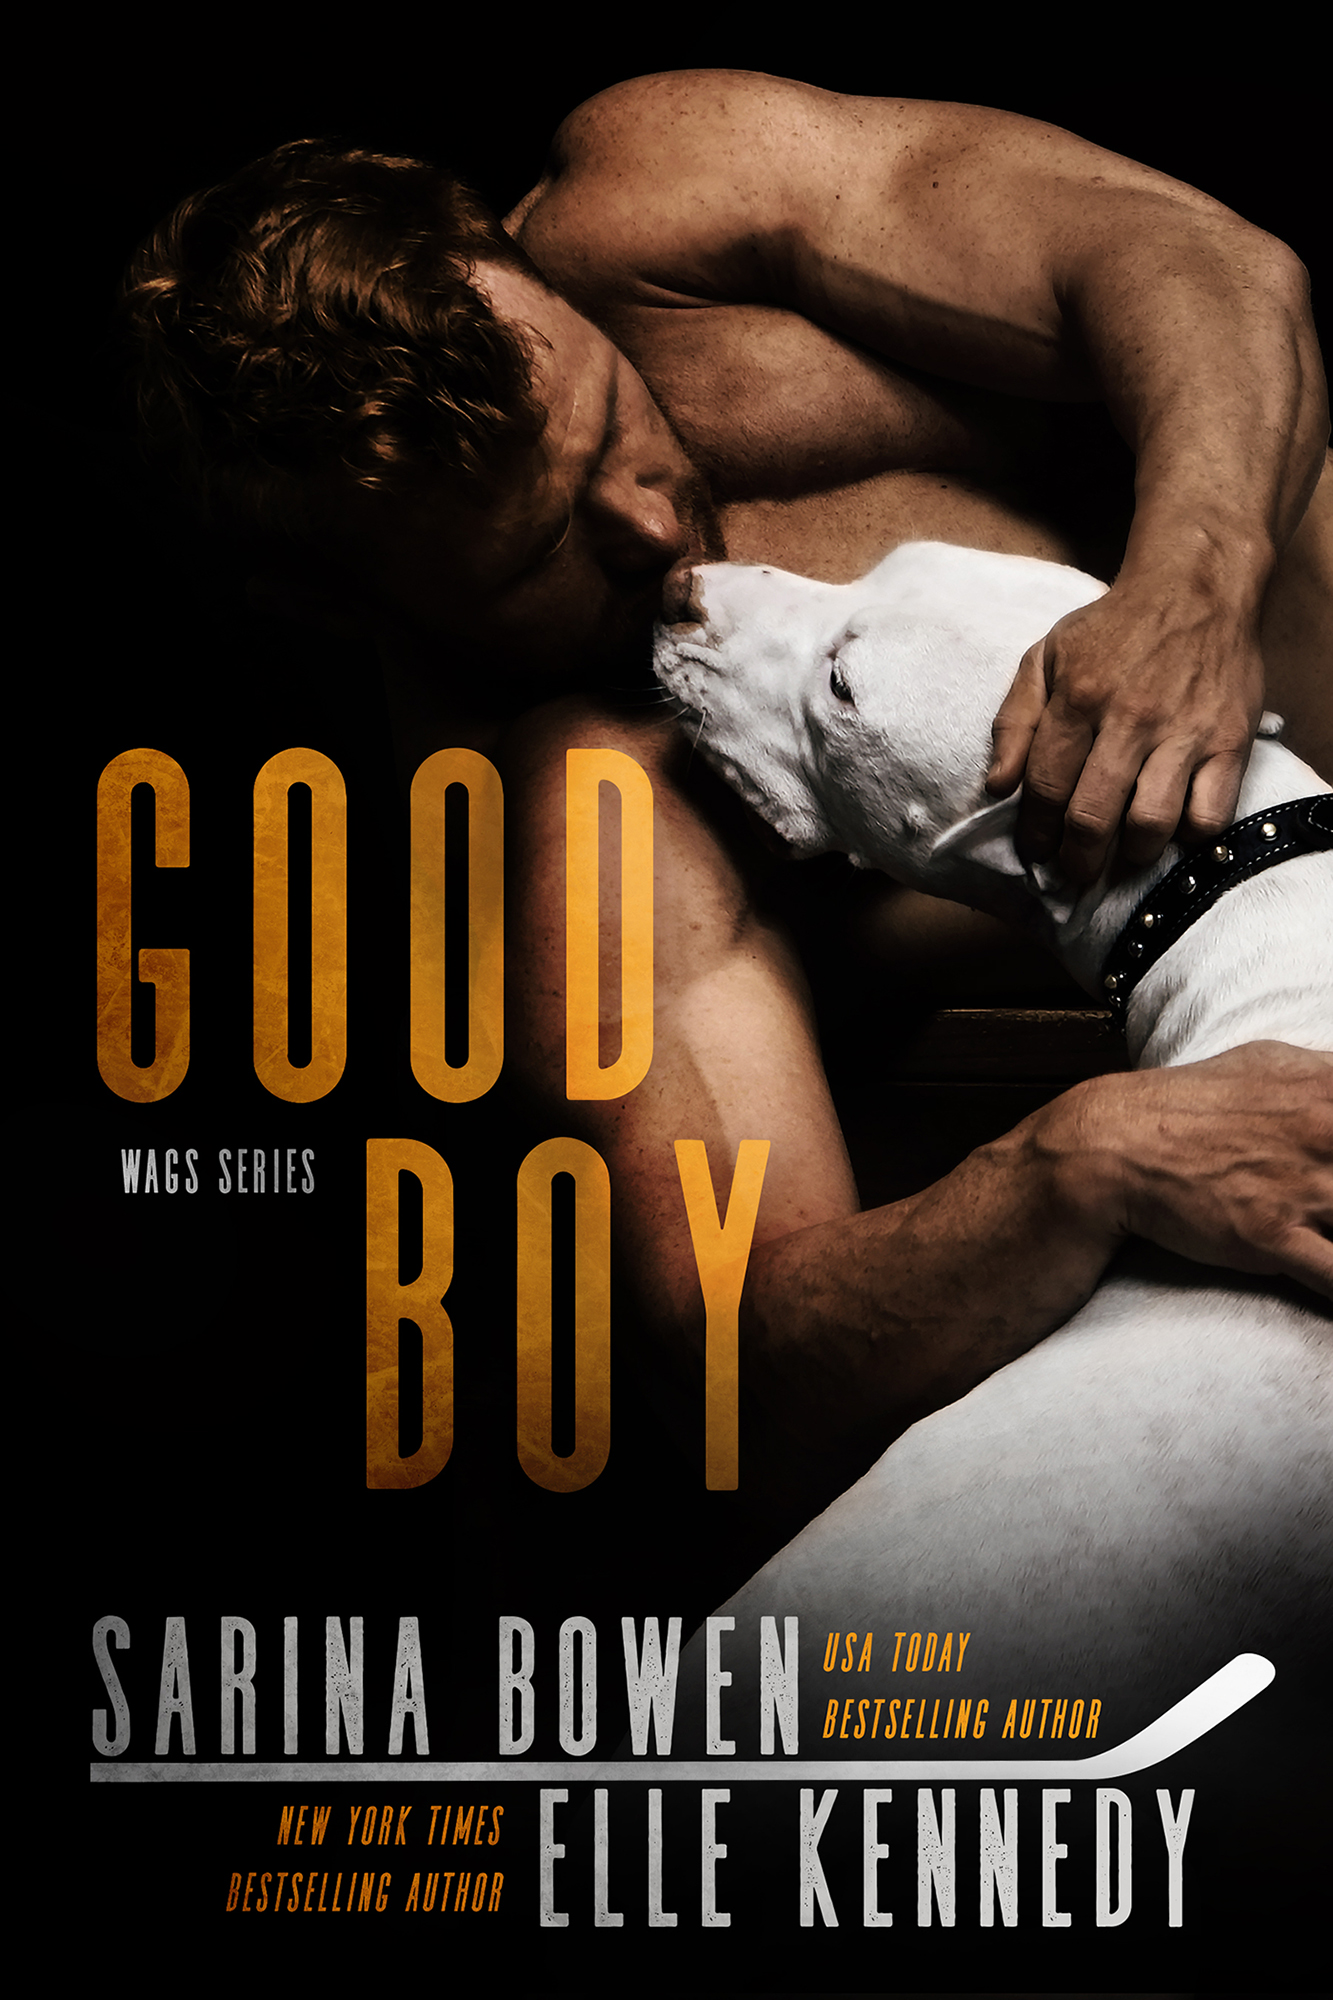 COVER REVEAL & NEW SERIES announcement from Sarina Bowen & Elle Kennedy